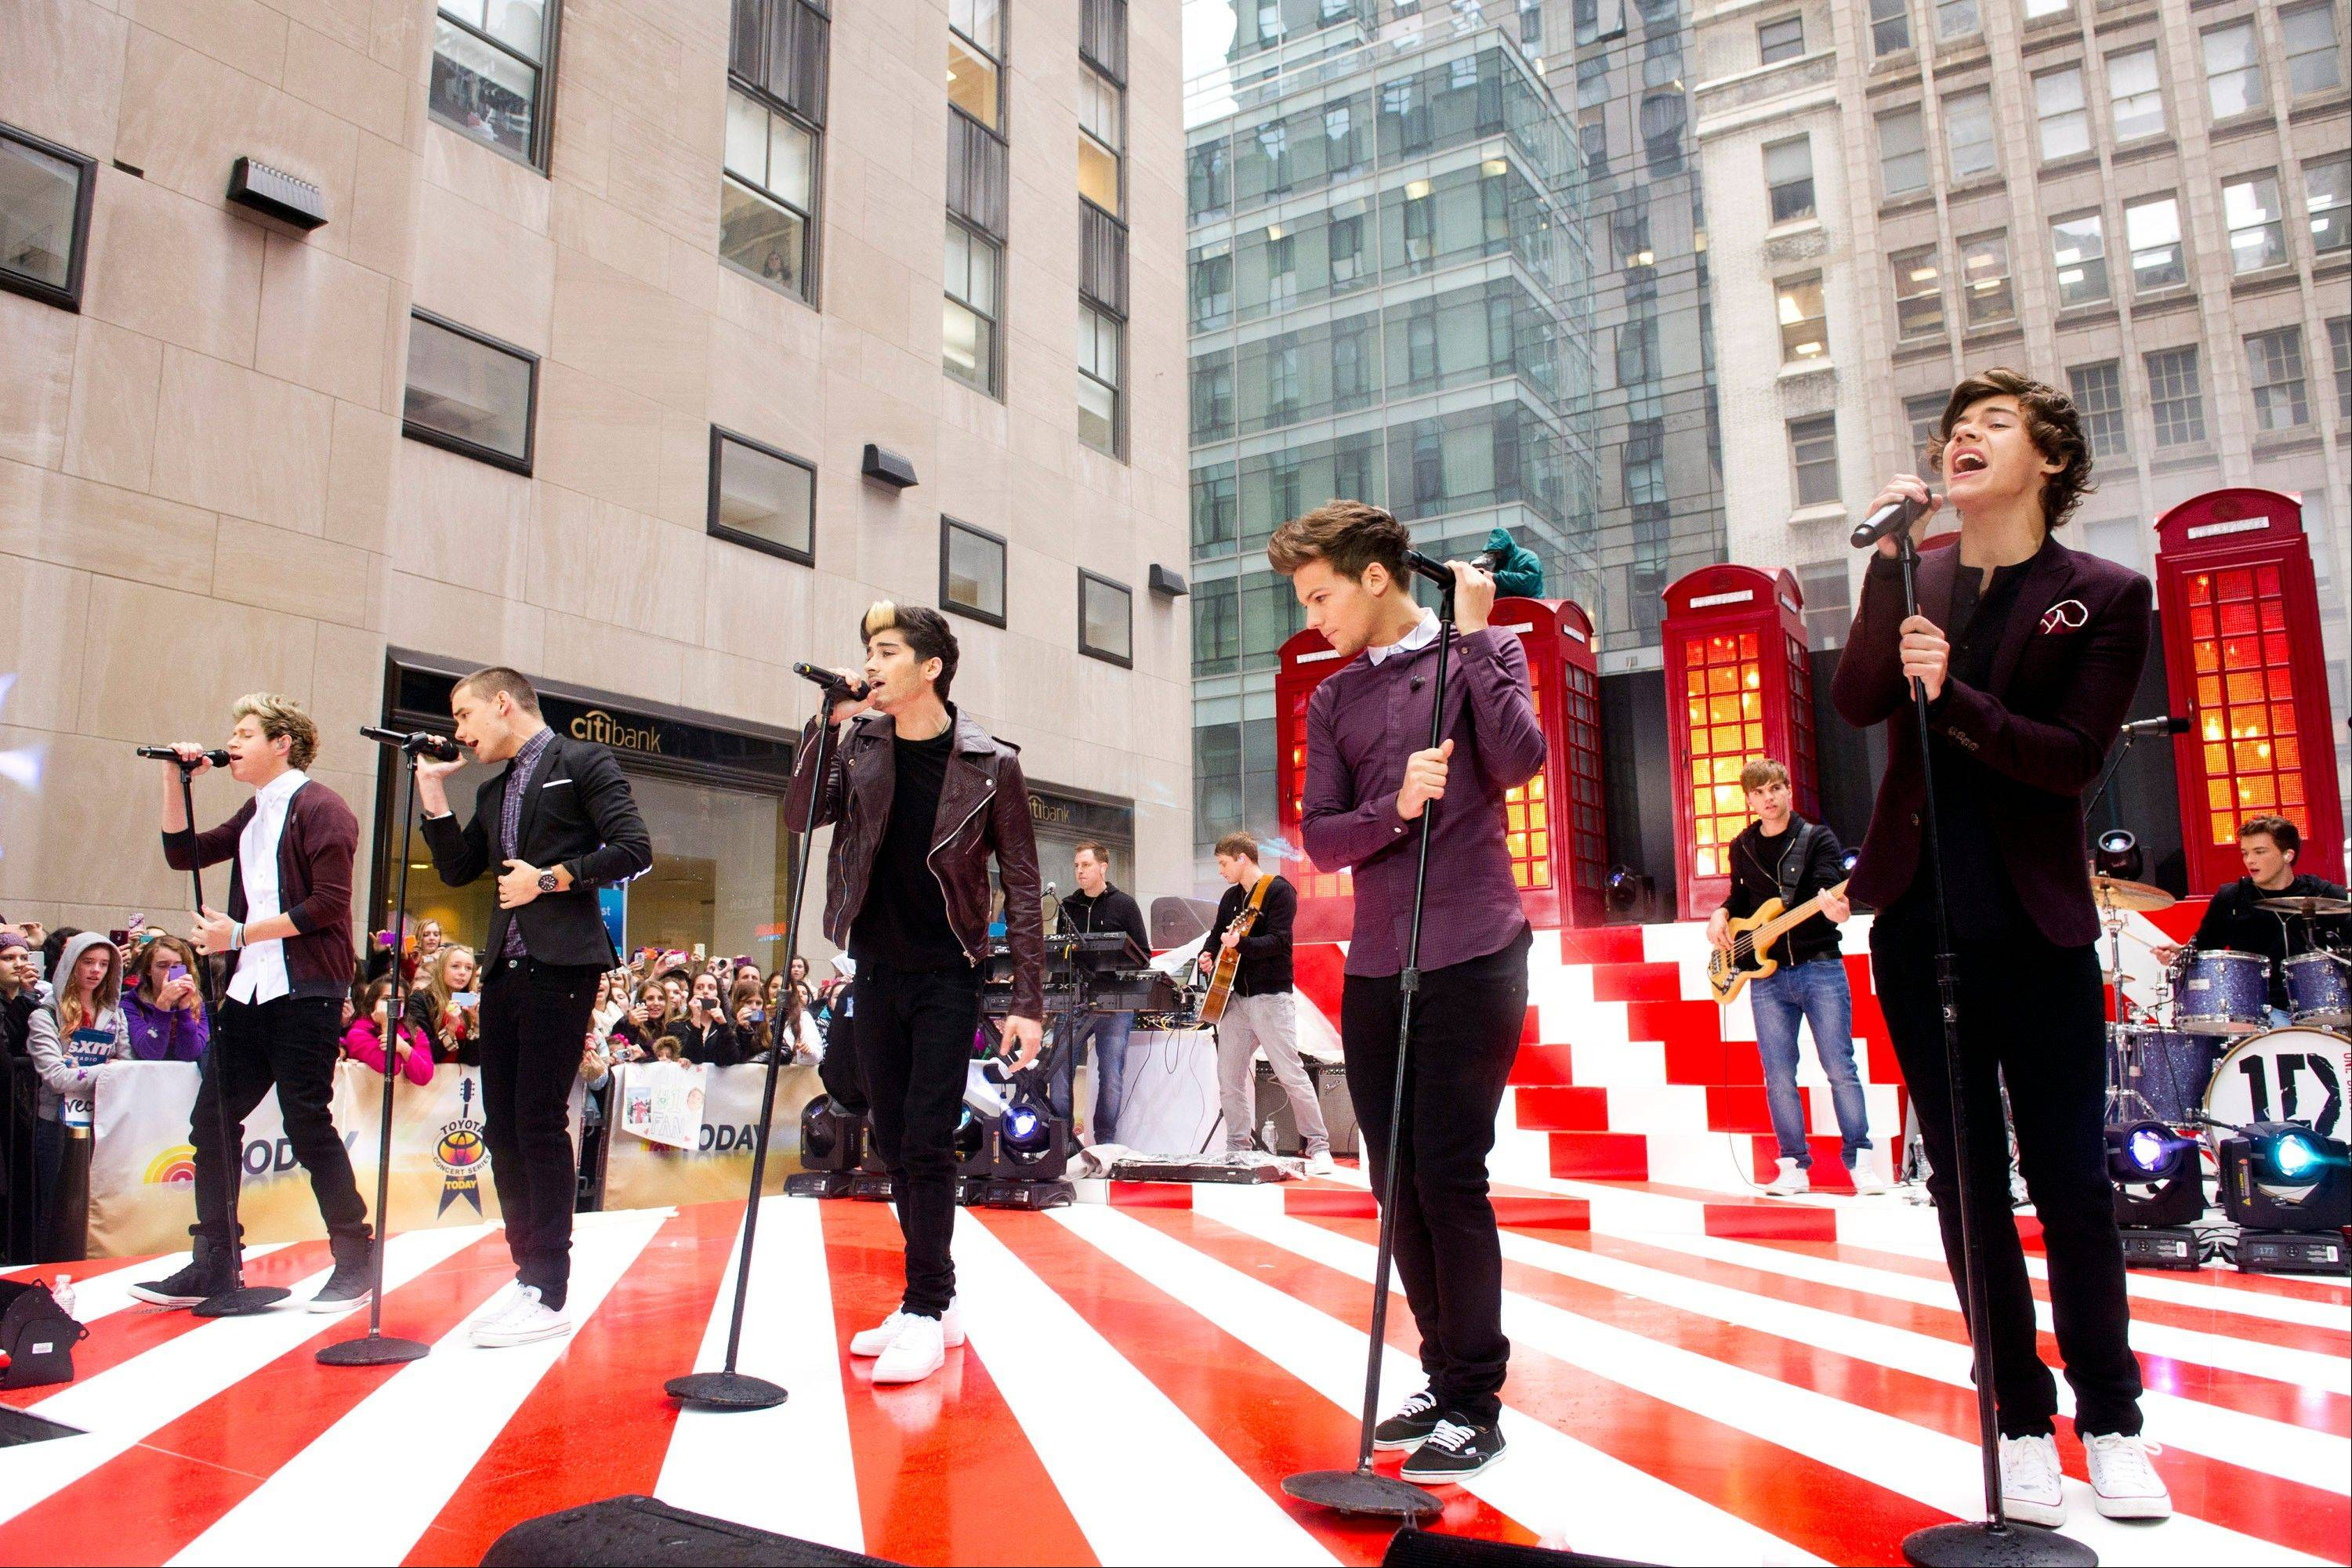 One Direction members, from left, Niall Horan, Liam Payne, Zayn Malik, Louis Tomlinson and Harry Styles will be featured in a 3-D film.